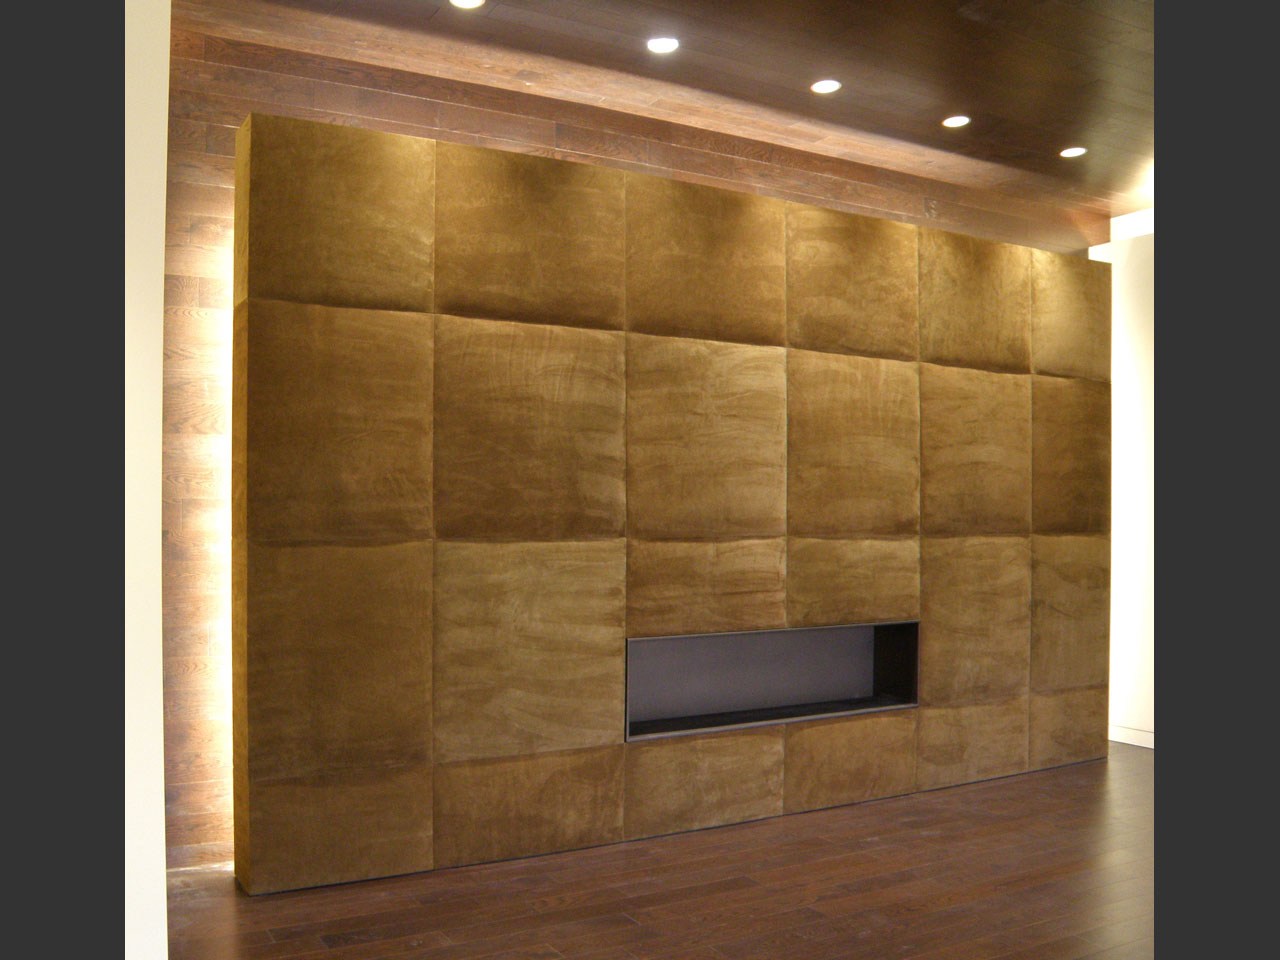 Suede Leather Quot Puffed Quot Fabri Trak Panels On Quot Floating